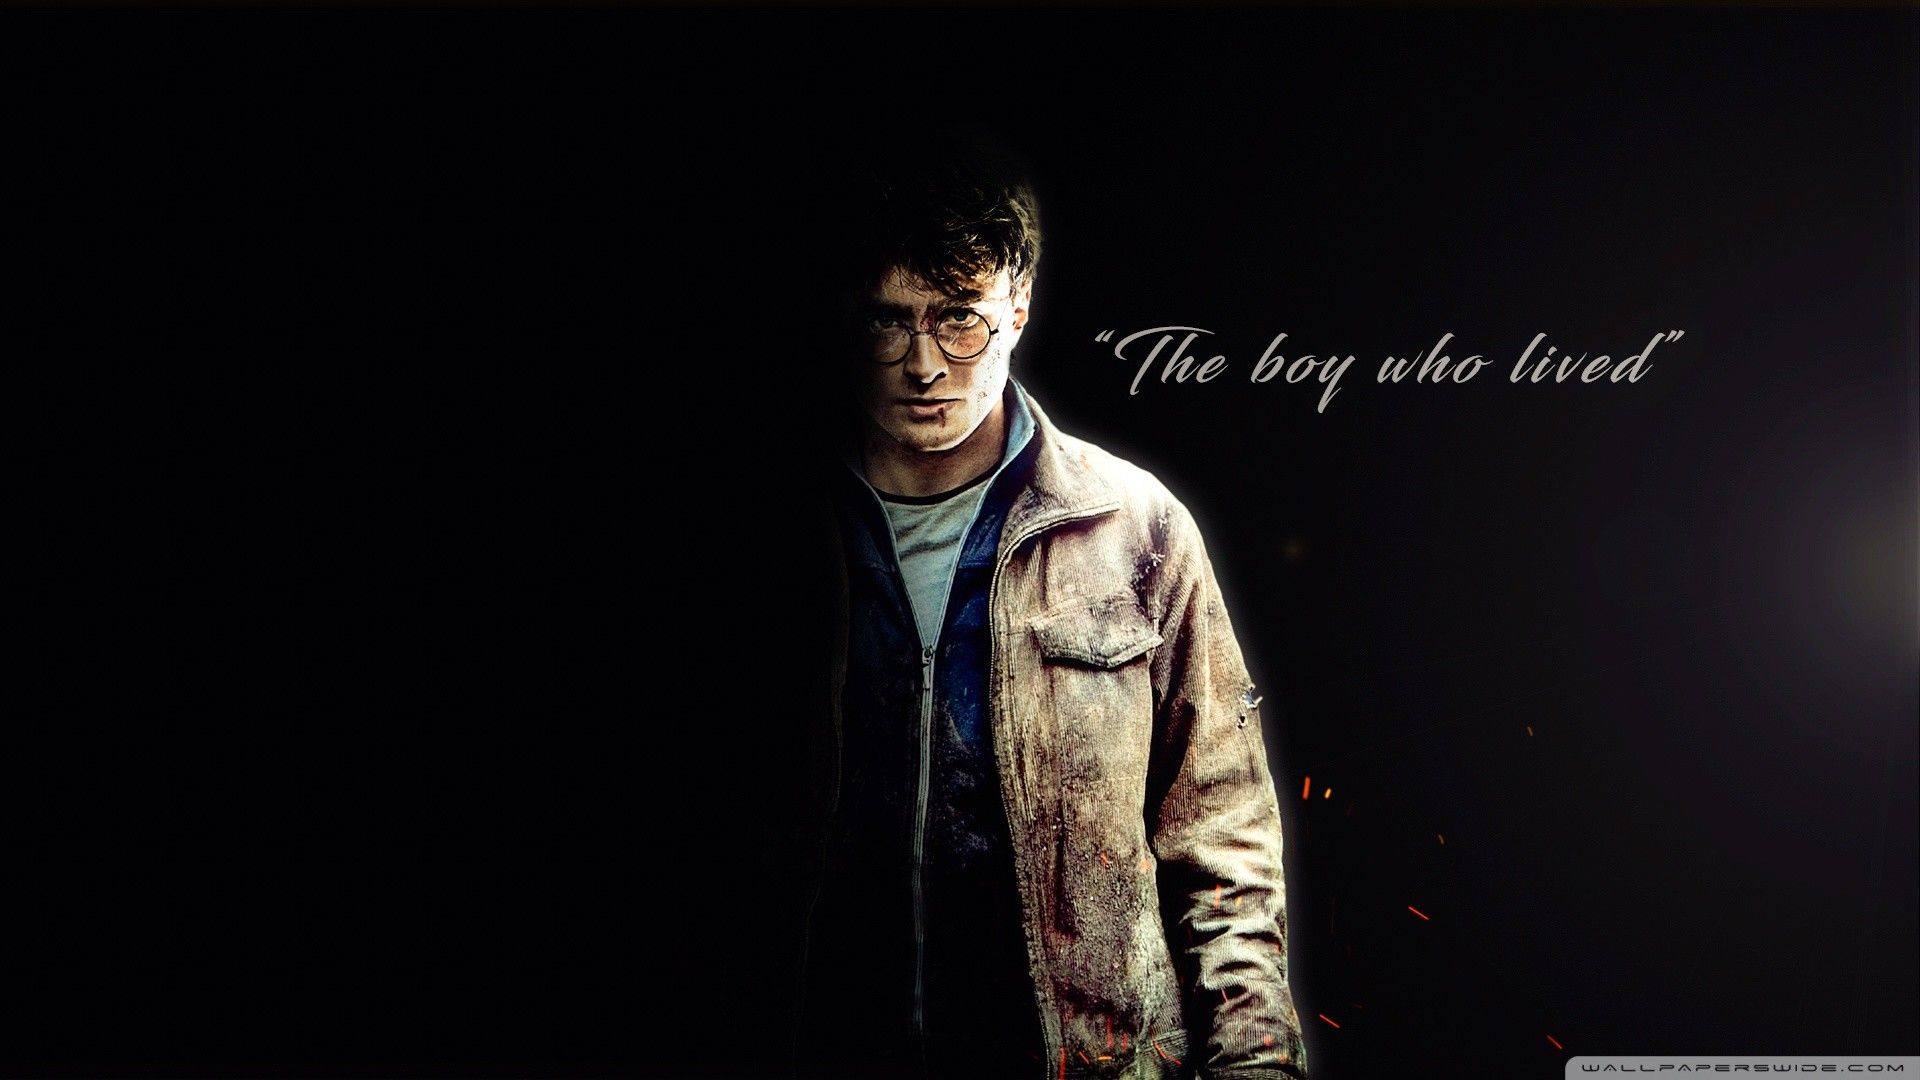 Res 1920x1080 Harry Potter The Boy Who Lived Hd Wide Wallpaper For 4k Uhd Widescreen De Harry Potter Wallpaper Harry Potter Images Harry Potter Background